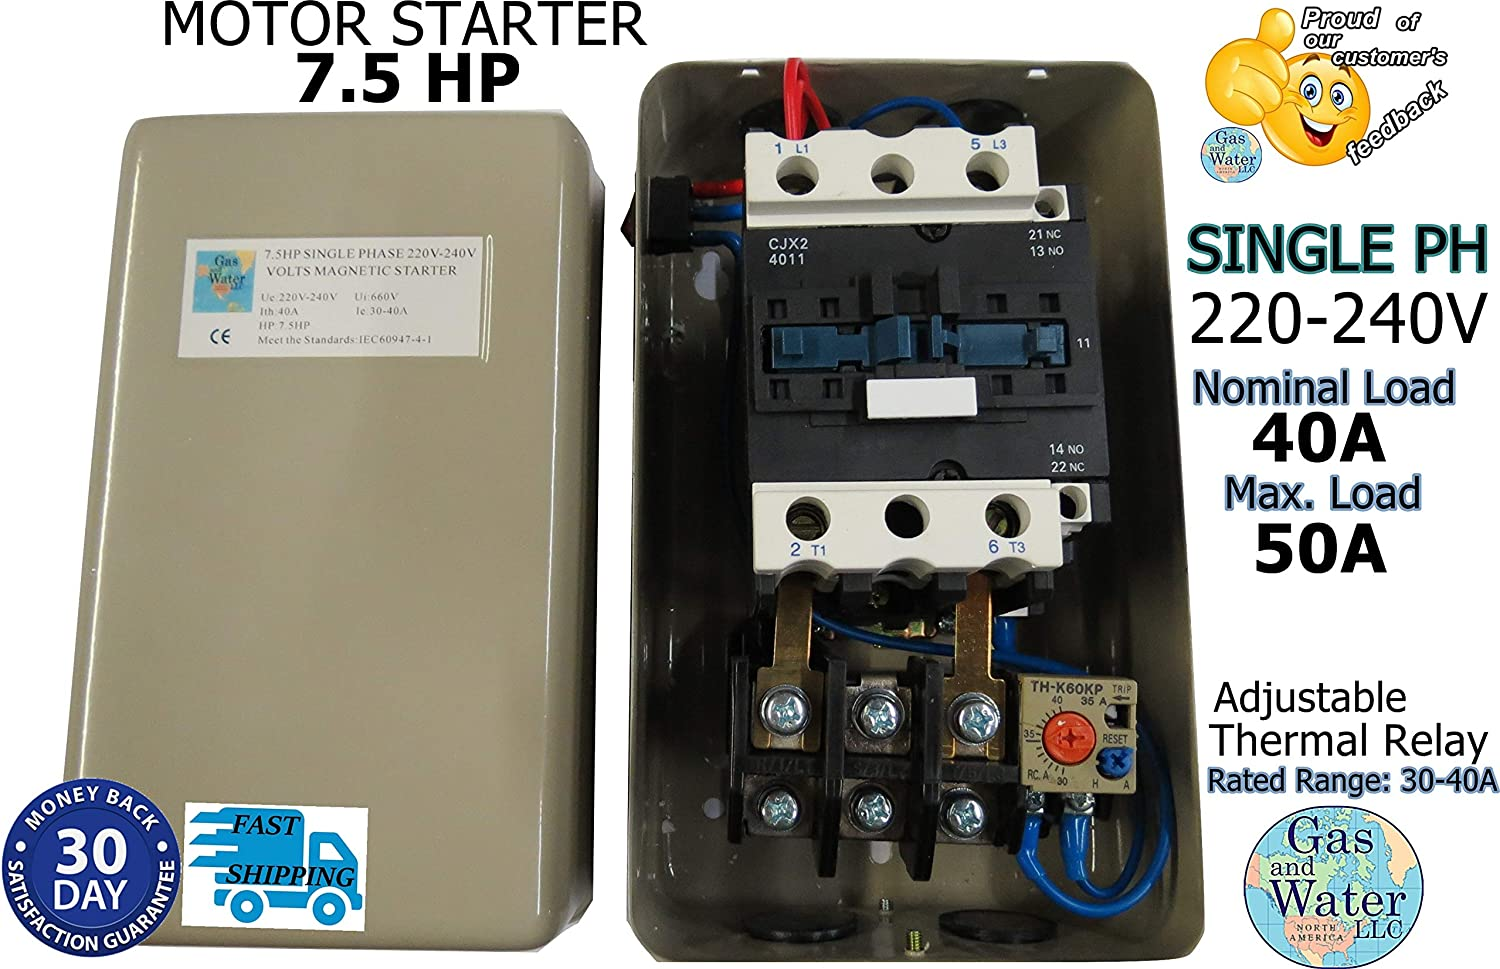 [QMVU_8575]  Magnetic Electric Motor Starter 7.5 HP Single Phase Control 220/240V 30-40A  - Electrical Switches - Amazon.com | 240 Volt Single Phase Compressor Wiring Diagram |  | Amazon.com